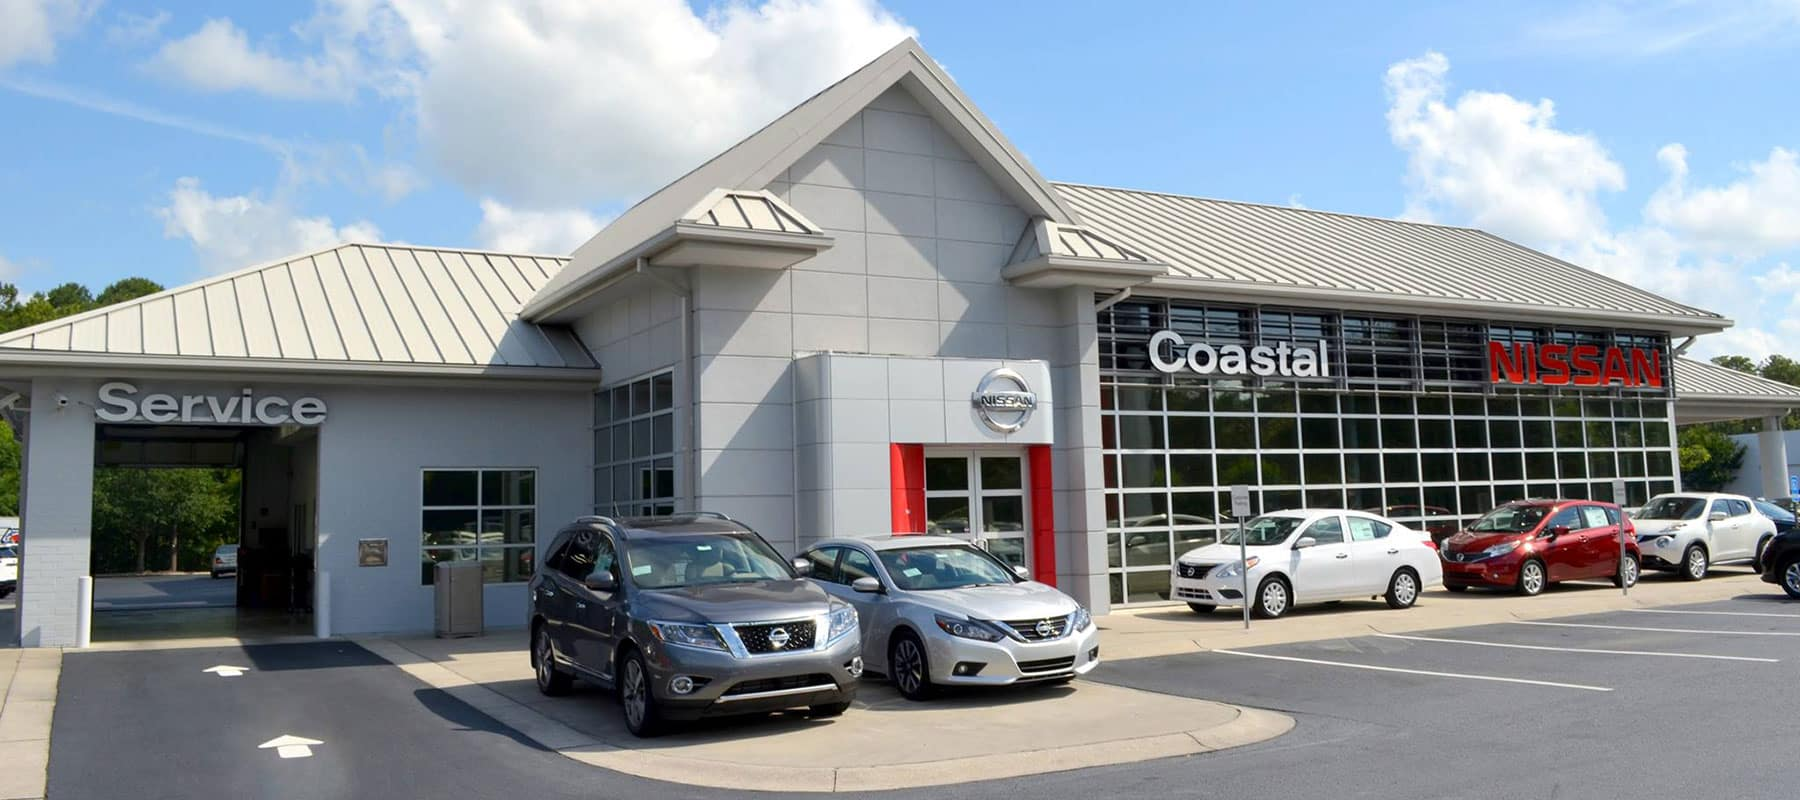 Costal Nissan exterior picture